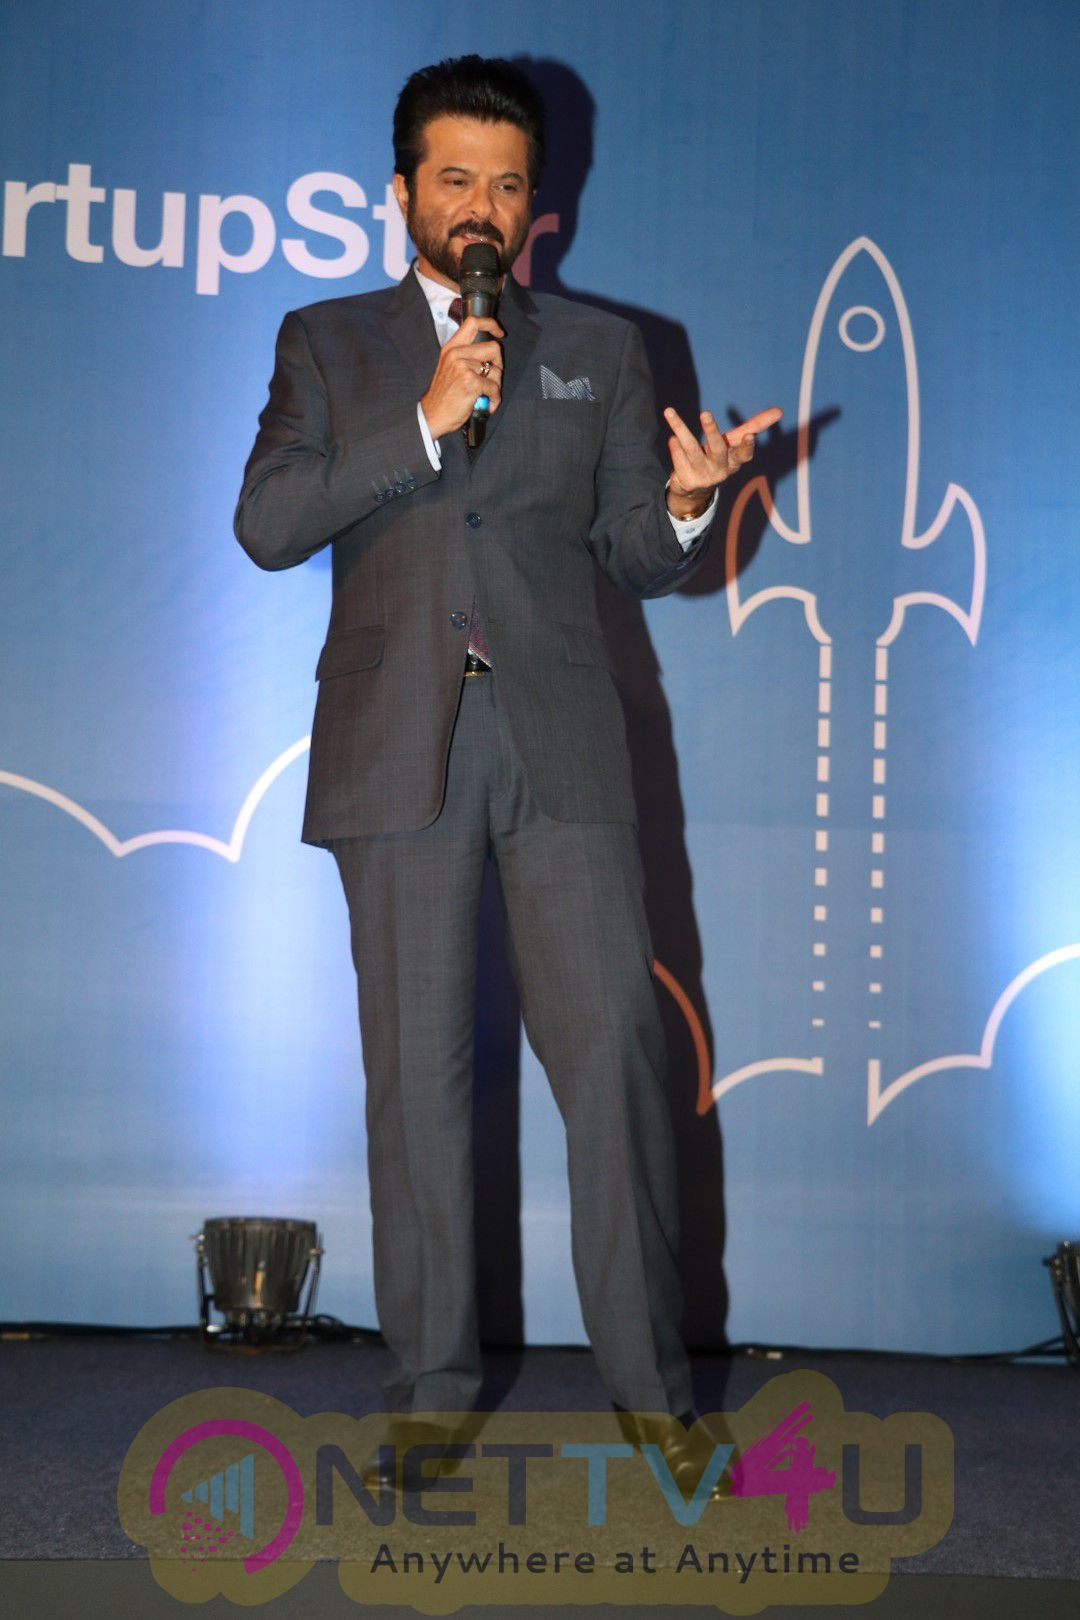 Indi Com Association With IBM Startup Initiative With Anil Kapoor Handsome Photos